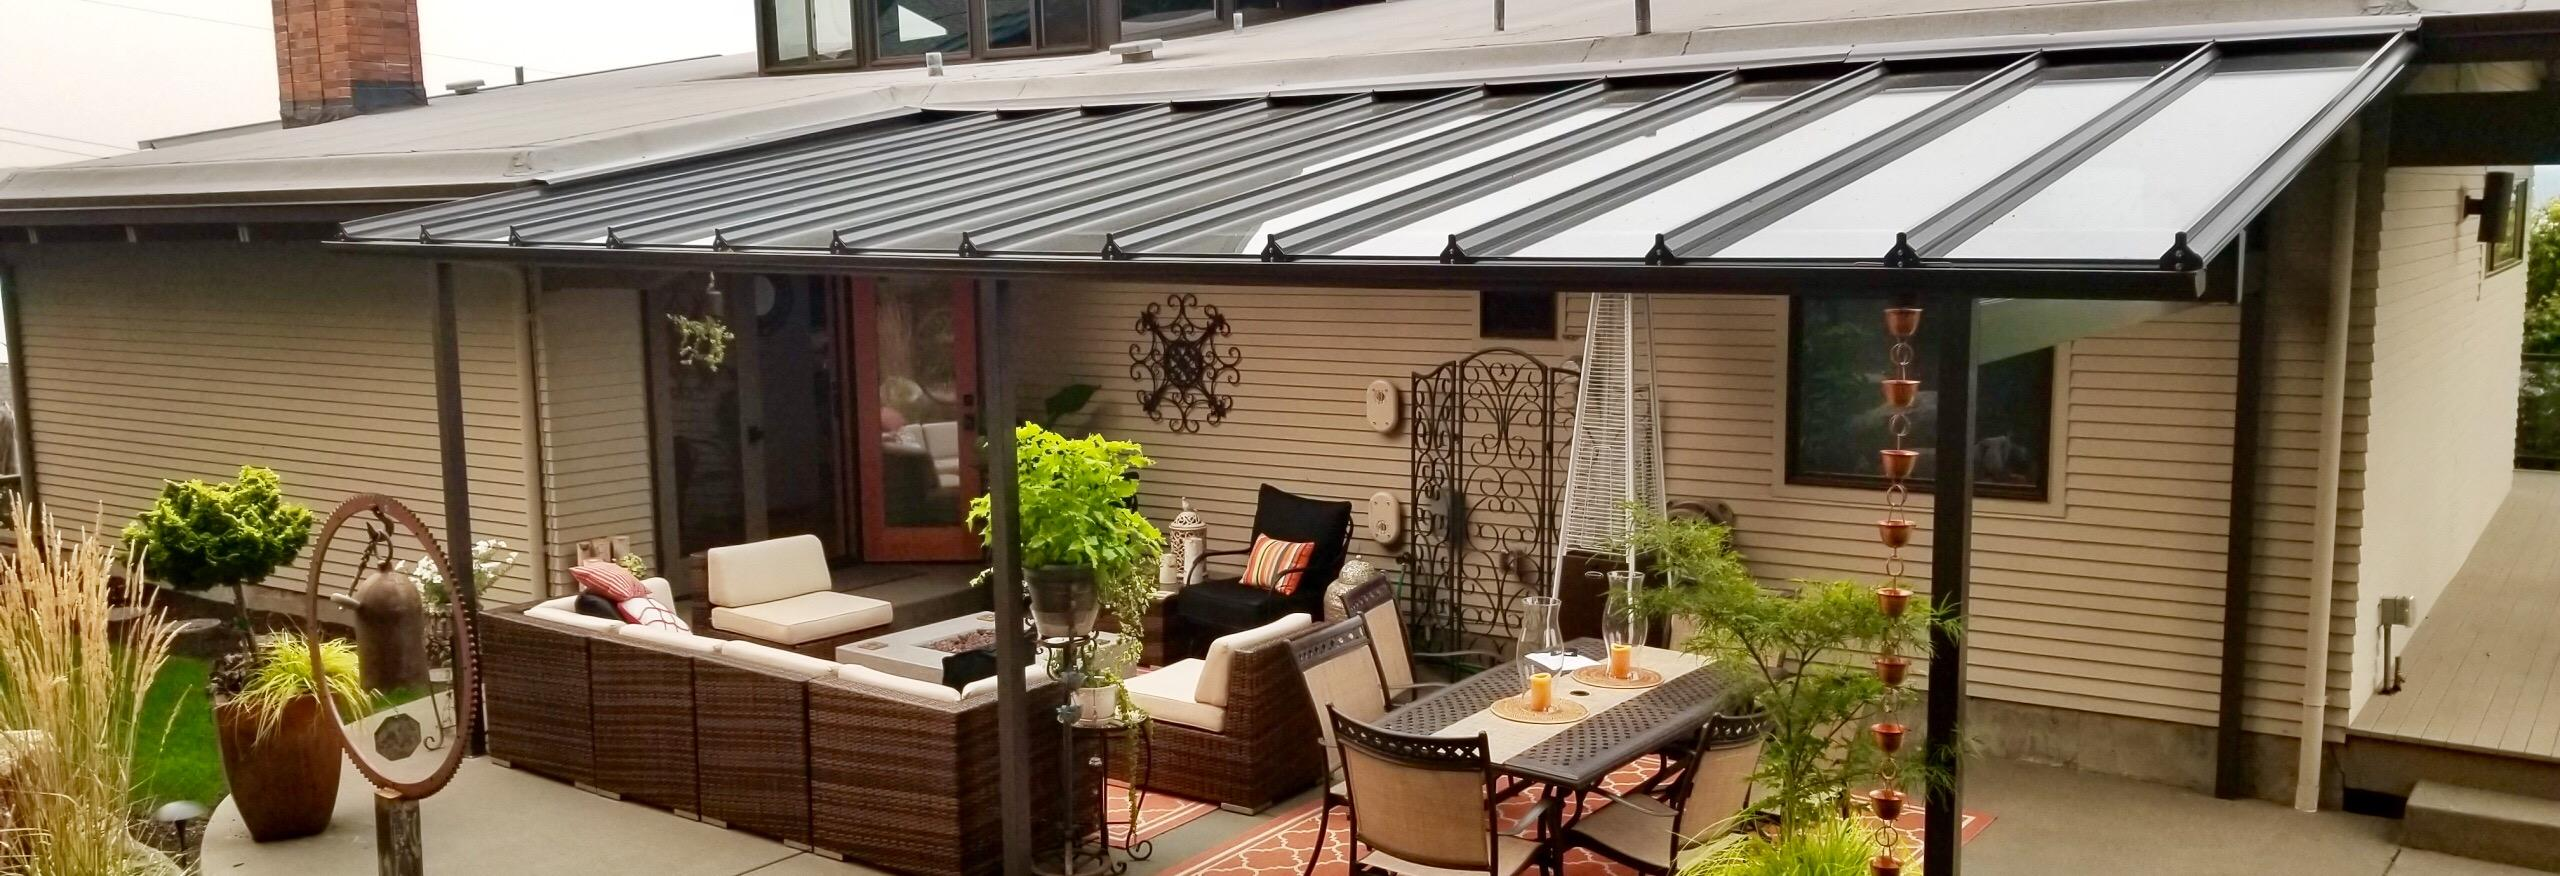 Seattle Patio Covers in Federal Way, WA banner image